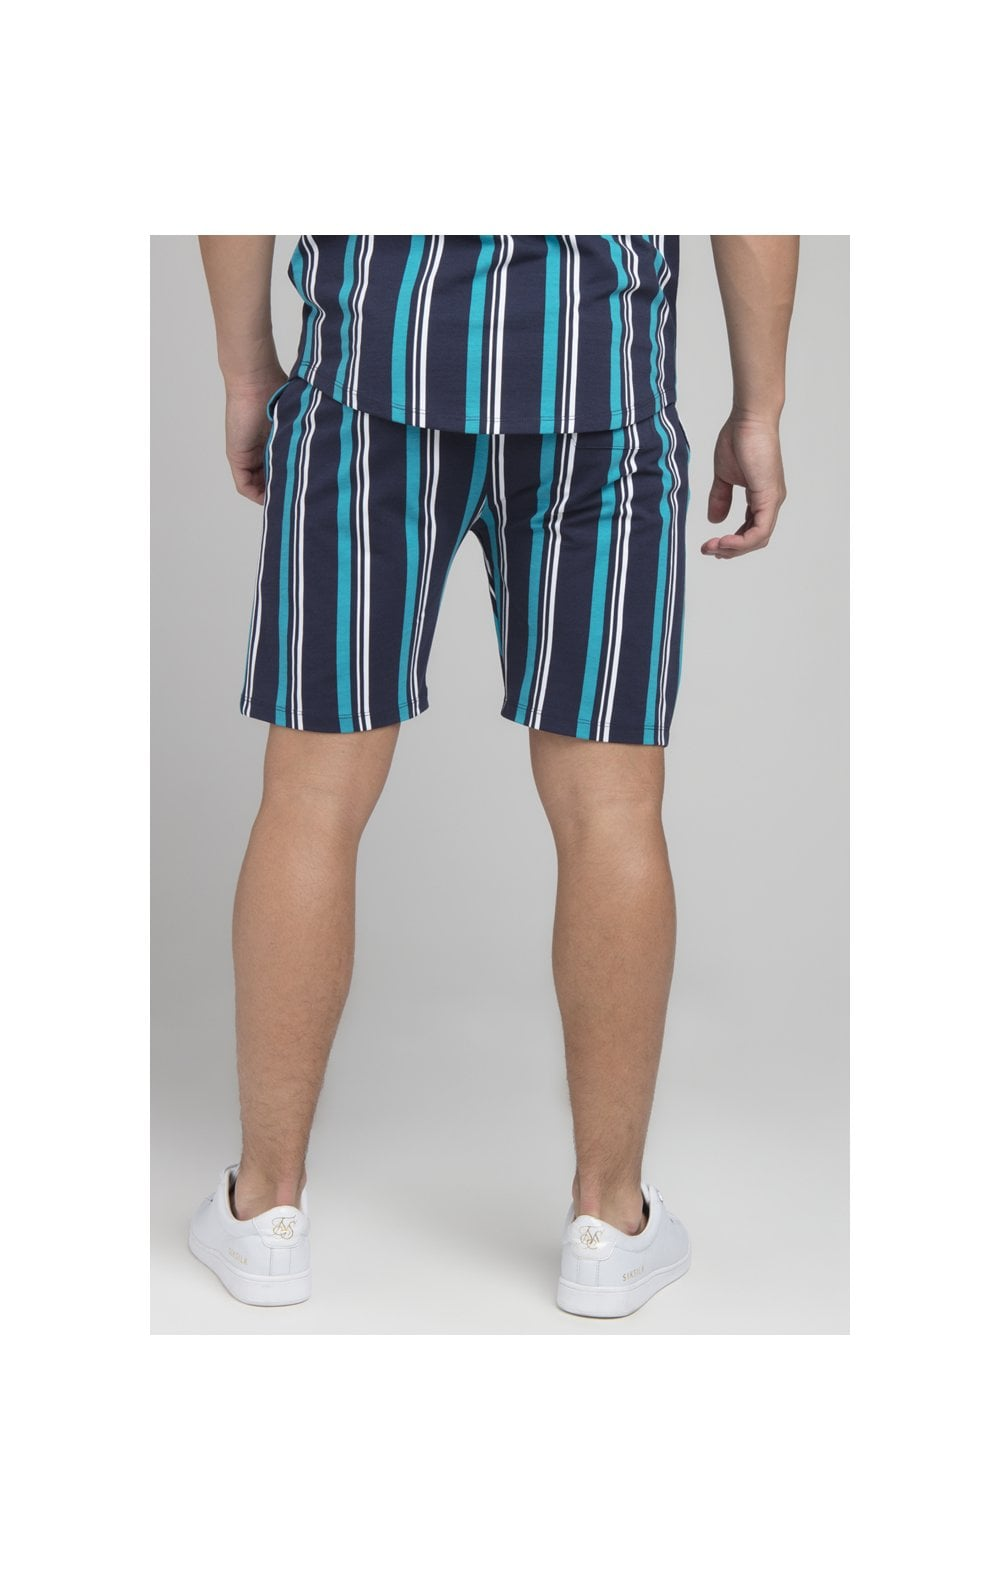 Illusive London Stripe Shorts - Navy & Teal (2)